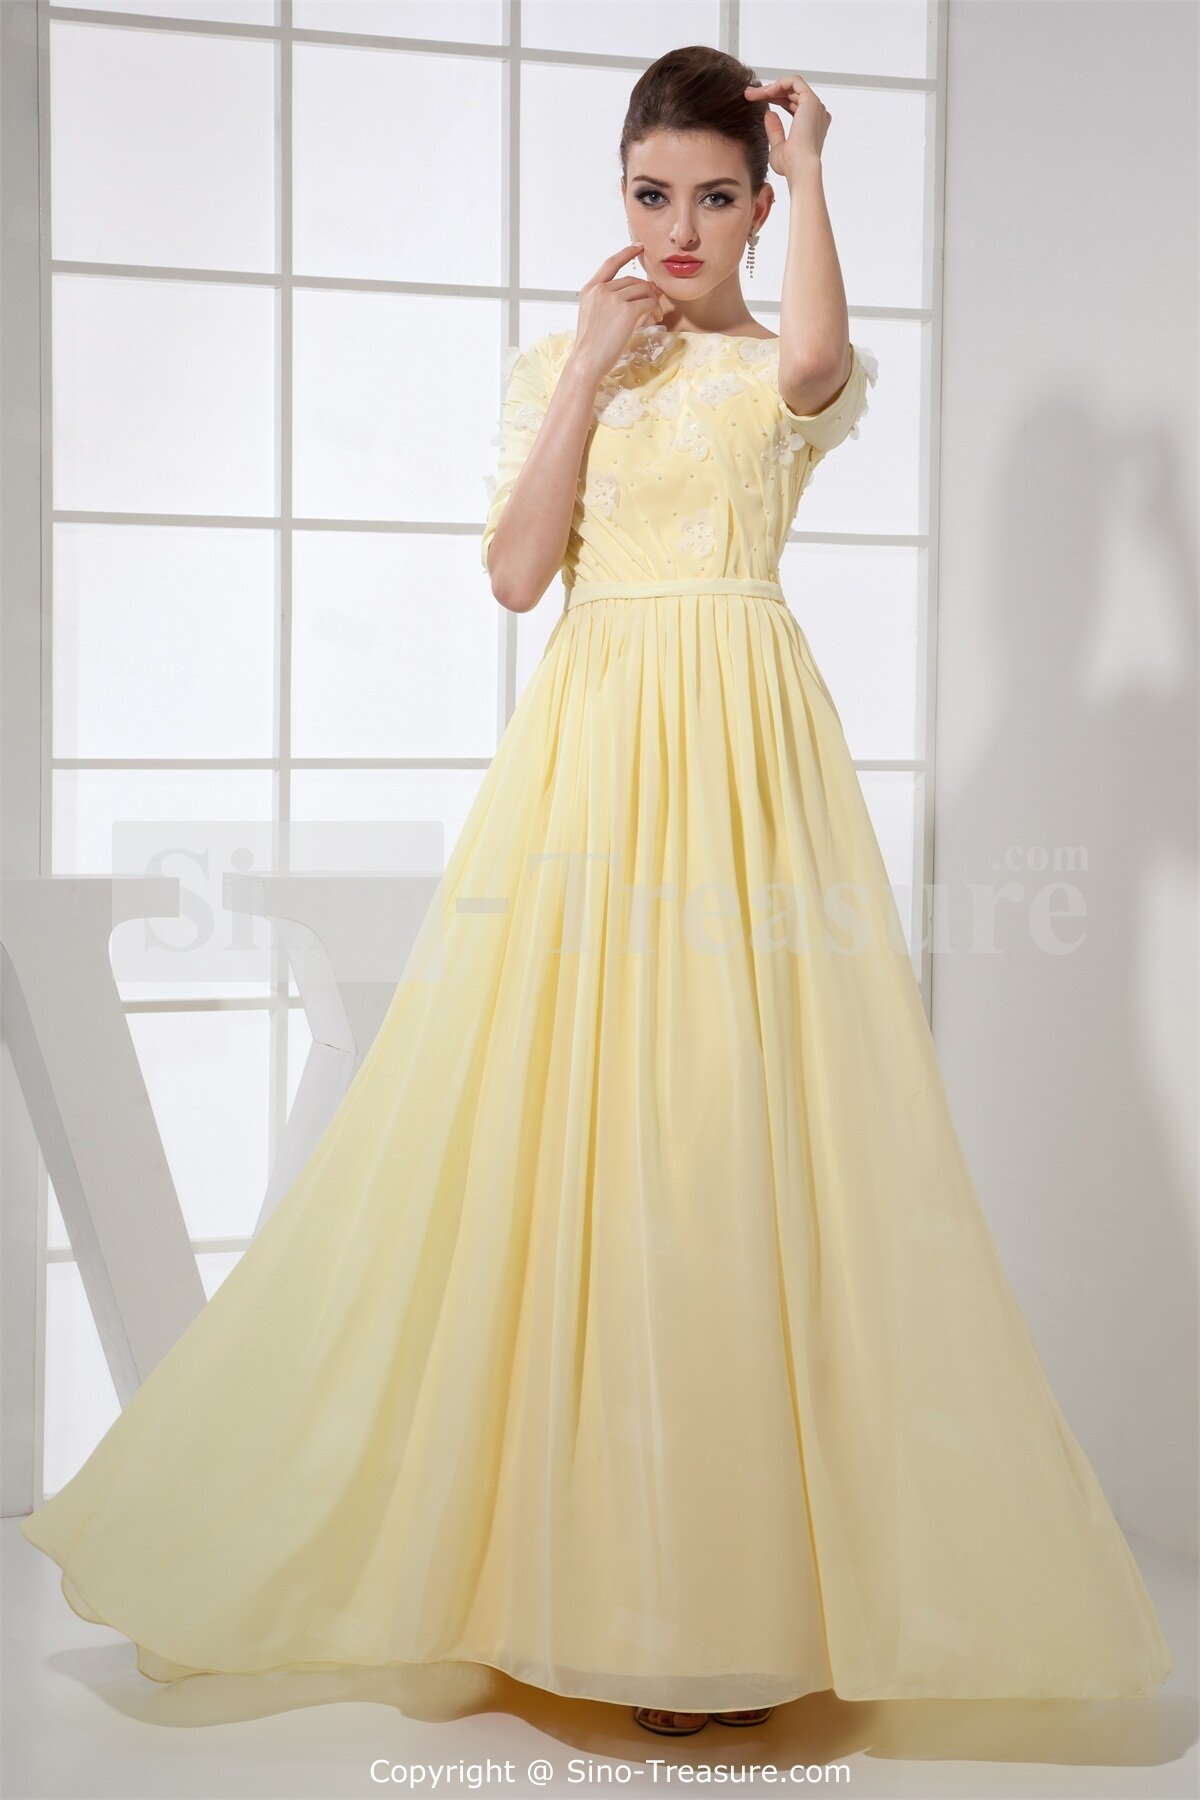 light yellow wedding dresses yellow wedding dress Light yellow wedding dresses photo 6